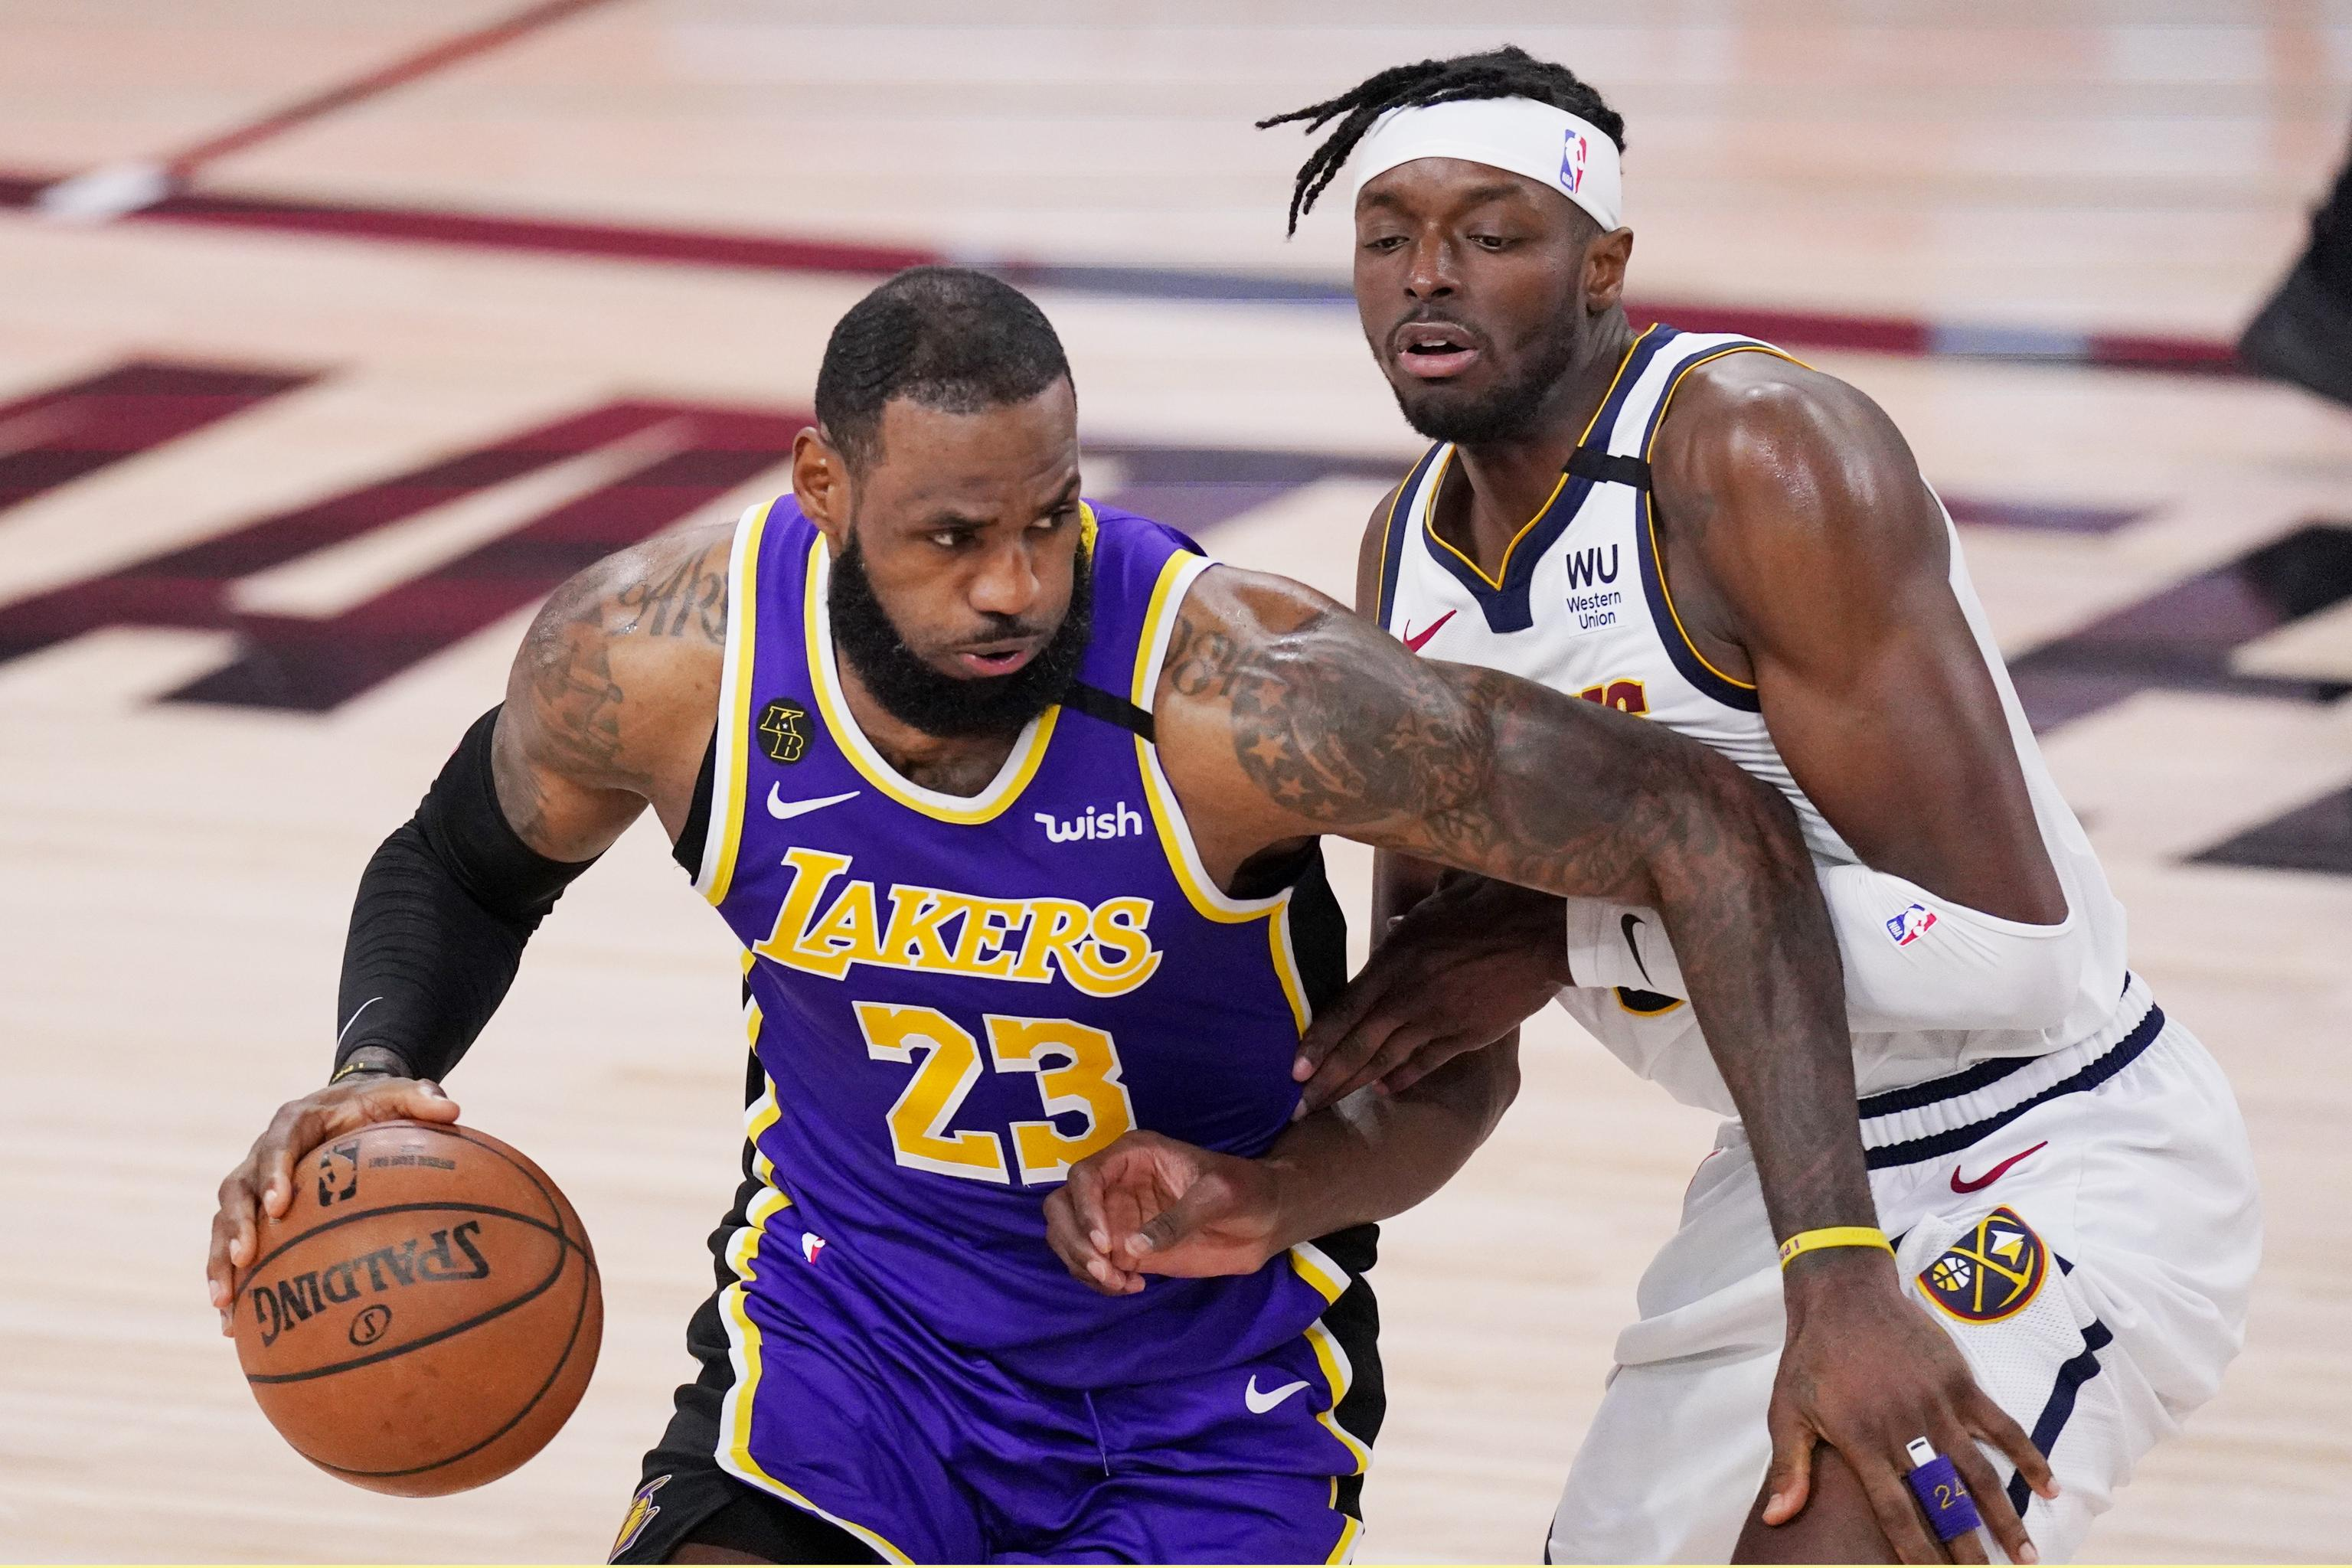 Nba Finals 2020 Heat Vs Lakers Game 1 Vegas Odds Prop Bets And Predictions Bleacher Report Latest News Videos And Highlights